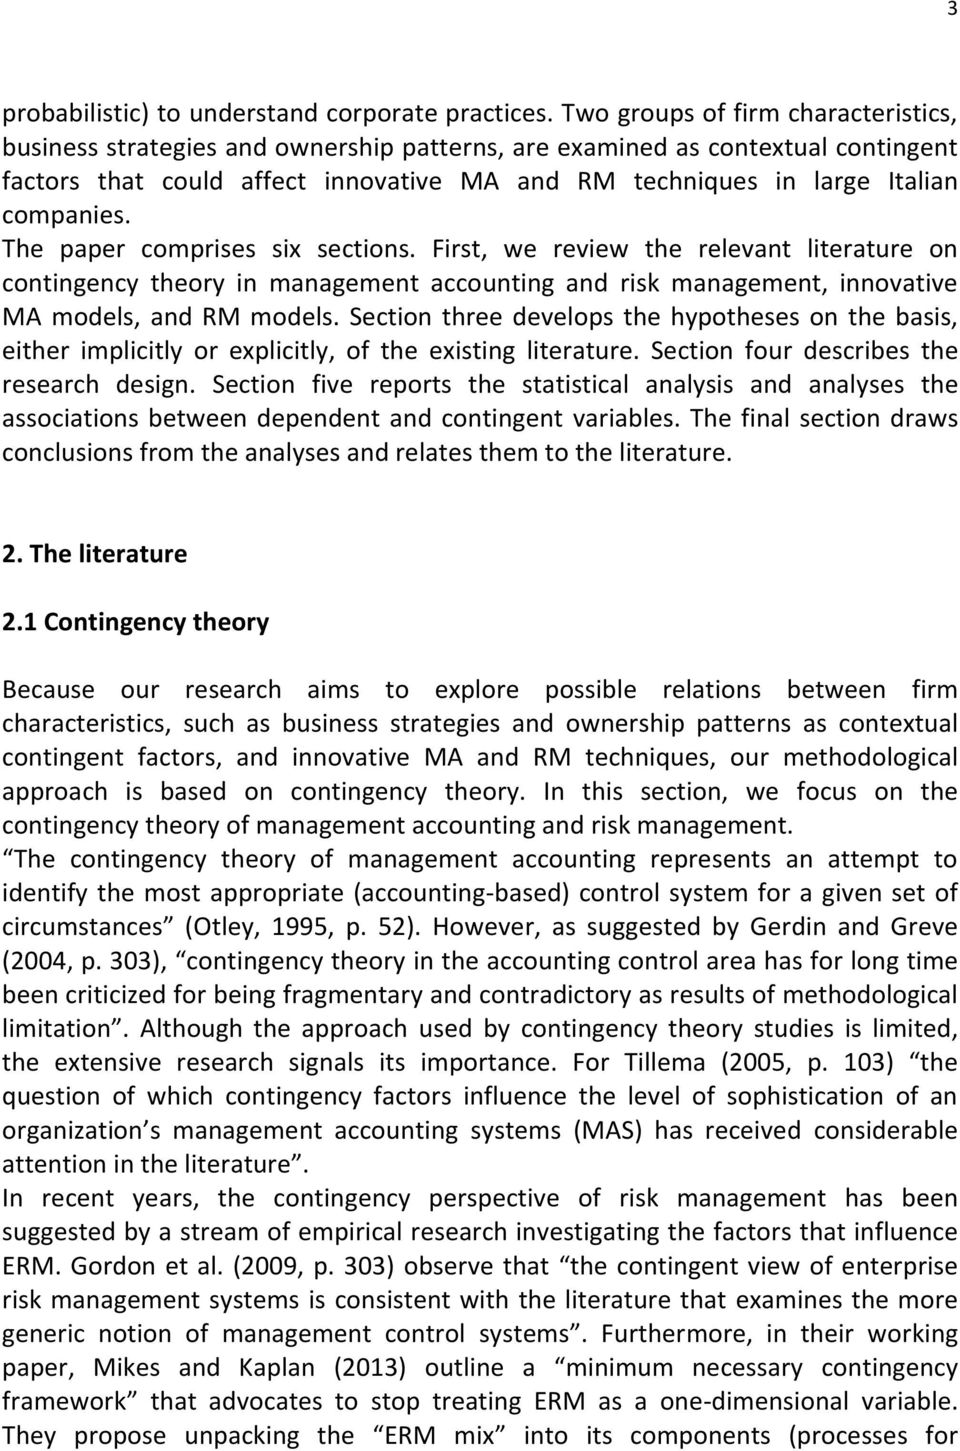 companies. The paper comprises six sections. First, we review the relevant literature on contingency theory in management accounting and risk management, innovative MA models, and RM models.